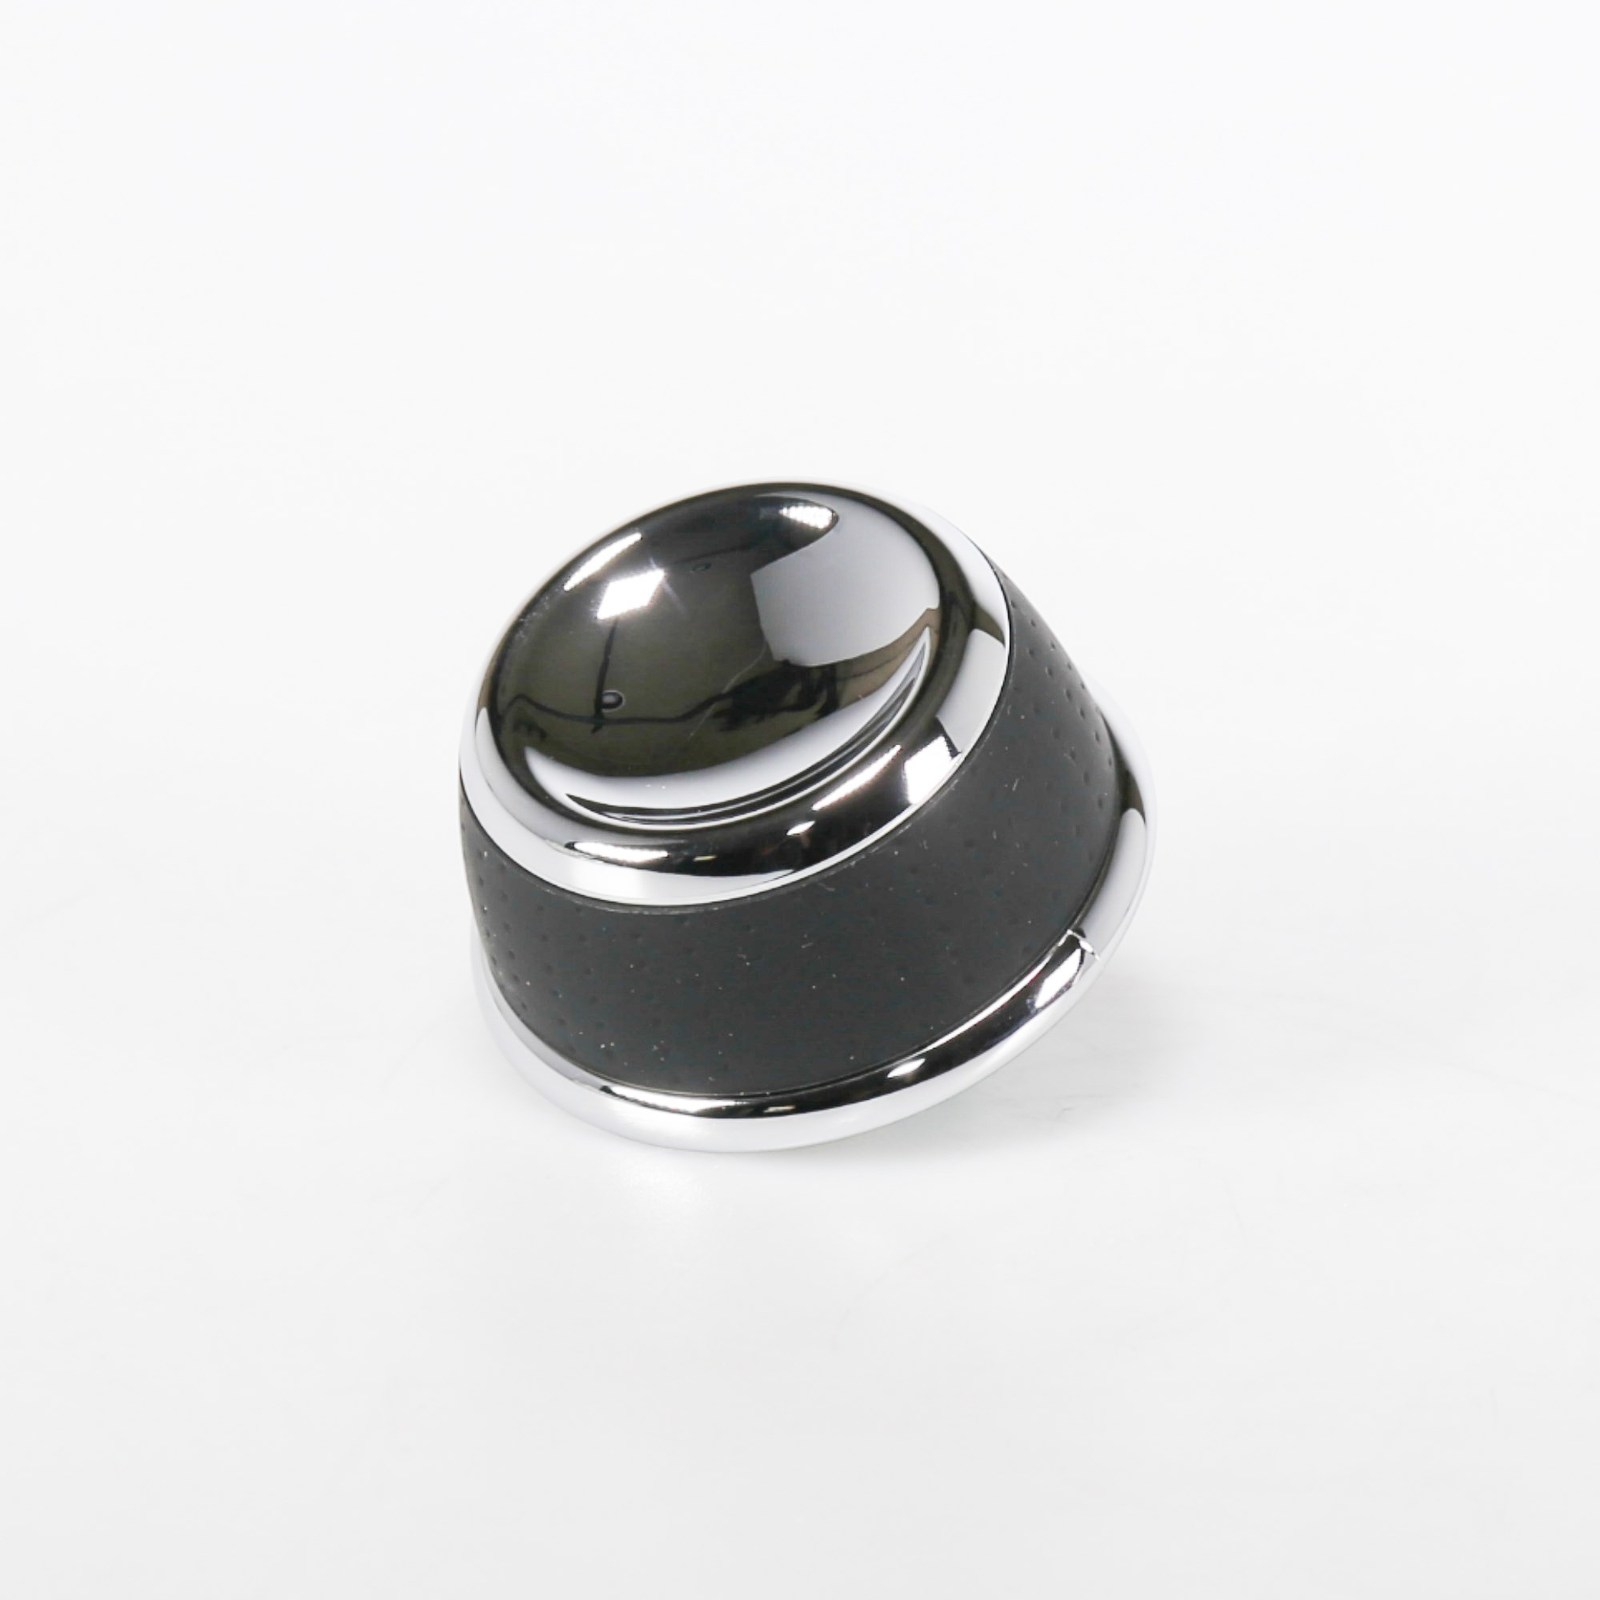 Primary image for WH01X10748 GE Dryer control knob